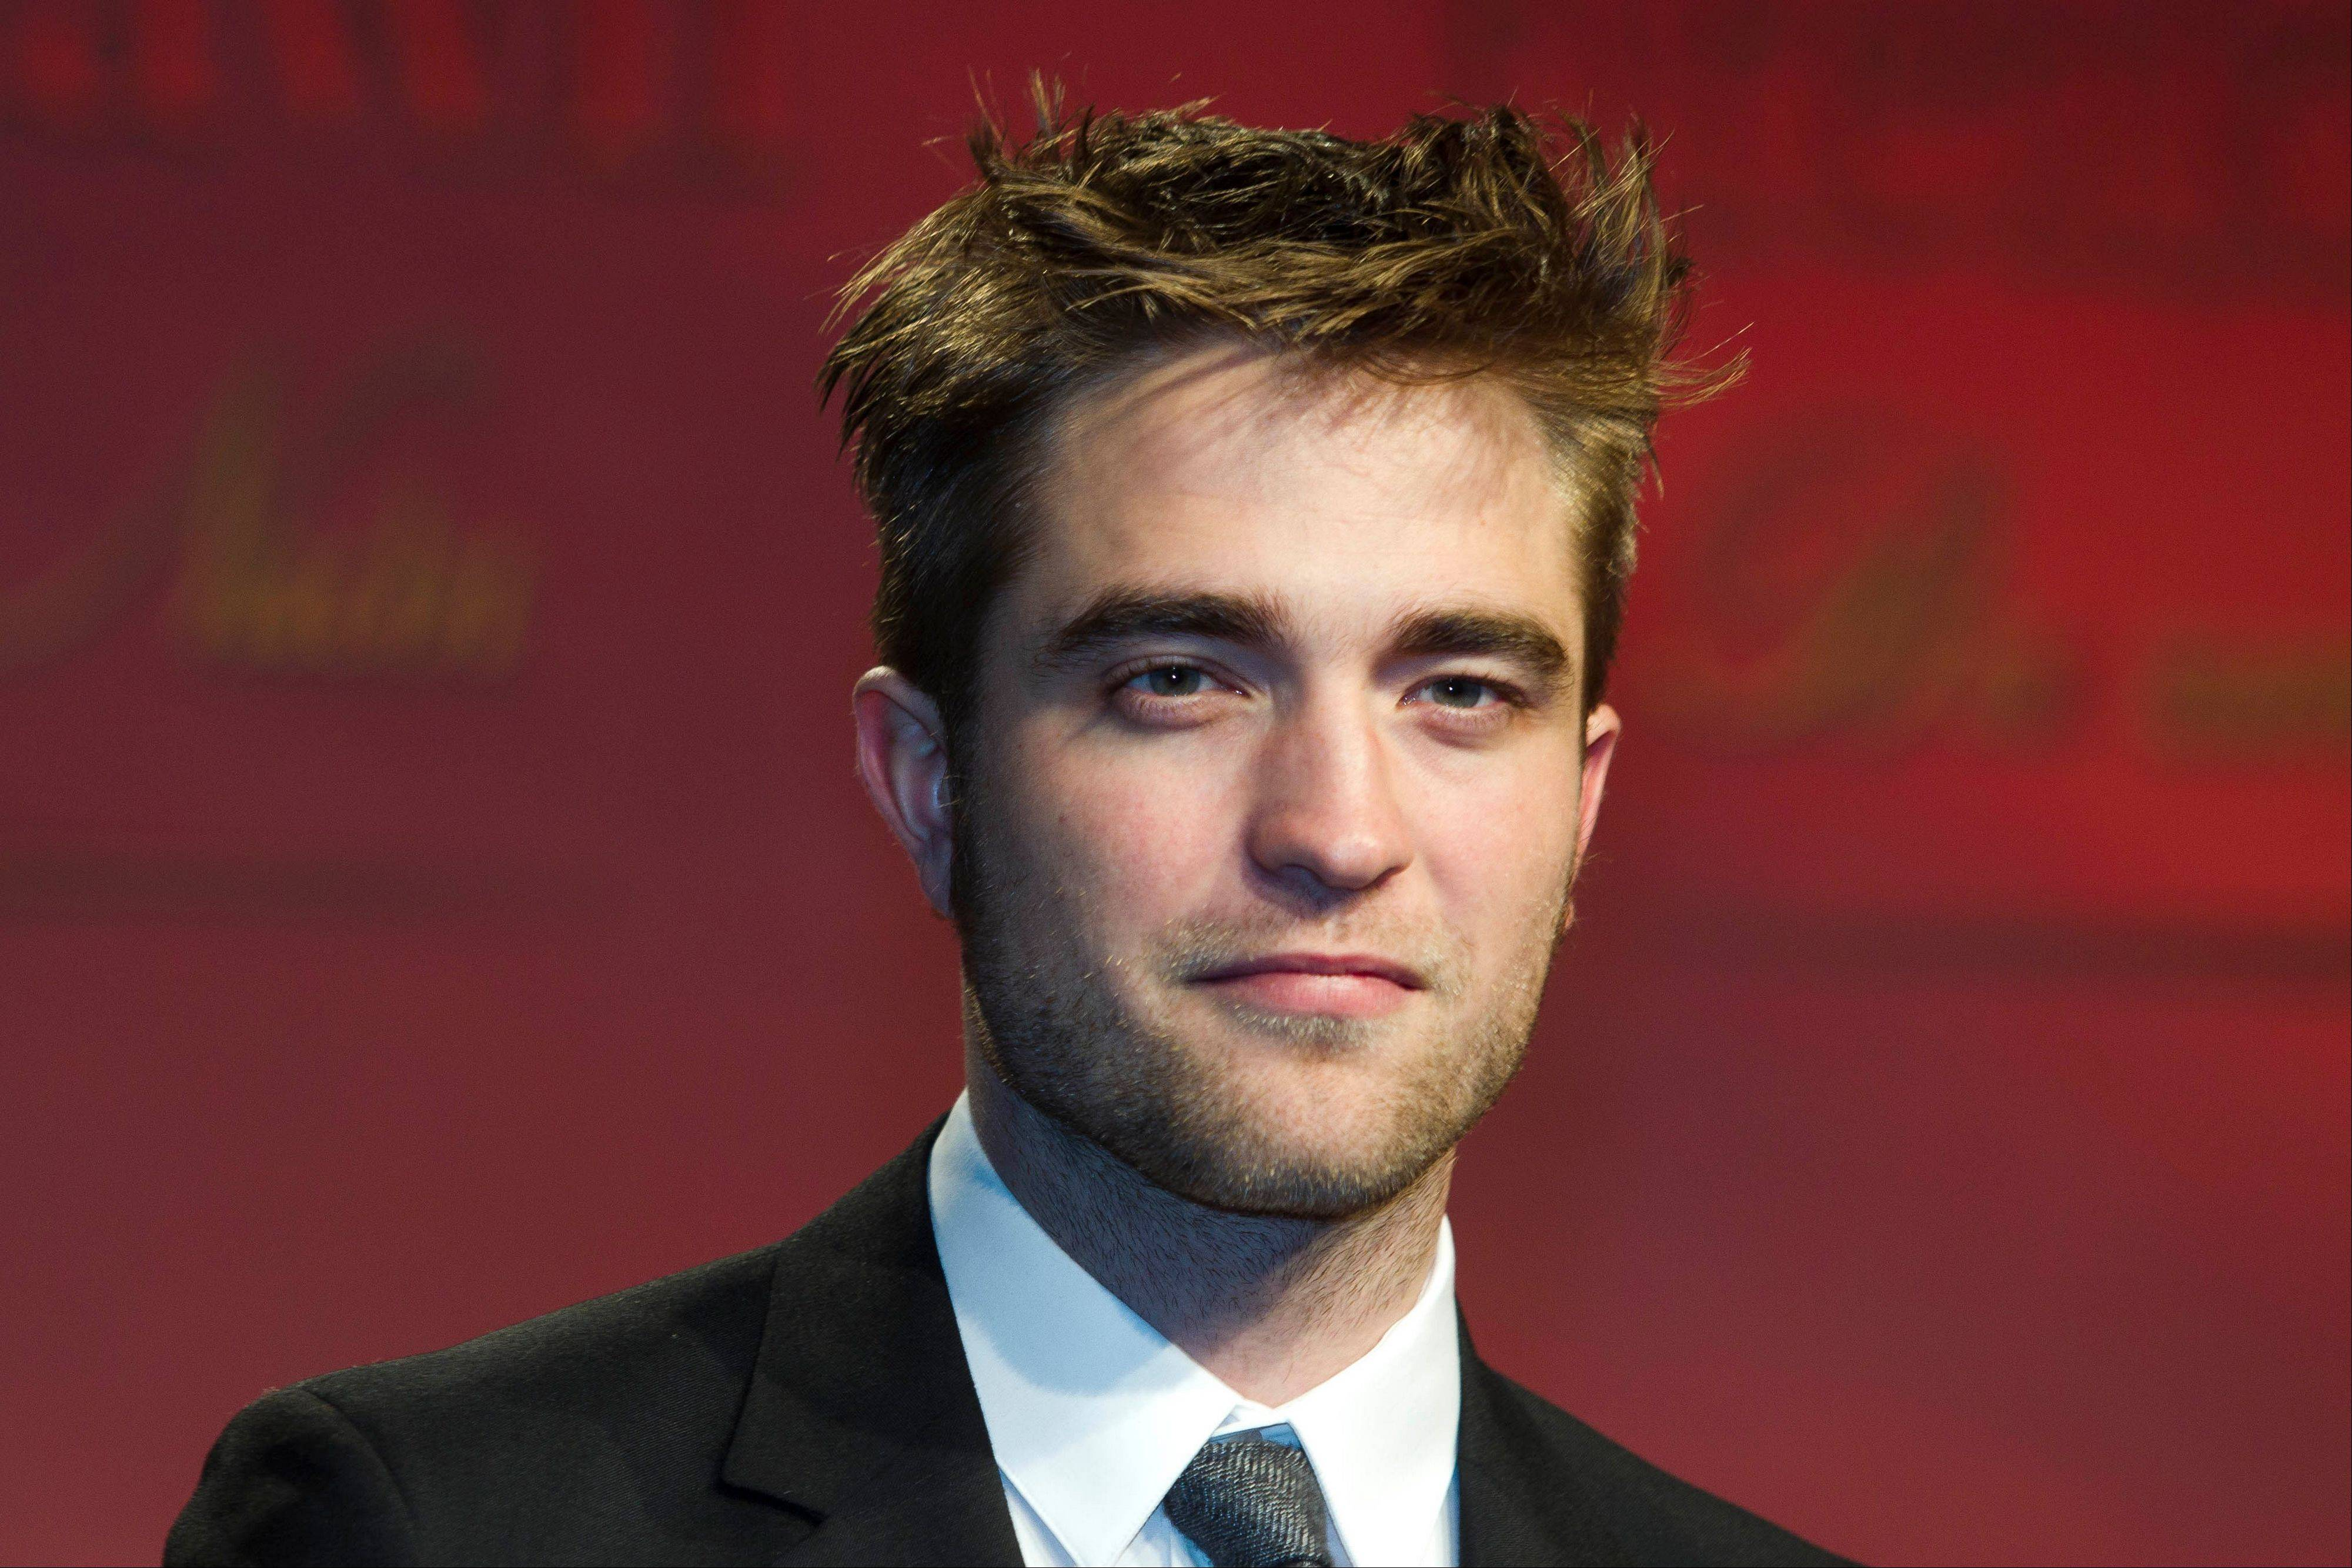 Robert Pattinson is set to appear Monday night on �The Daily Show With Jon Stewart.� It�s a gentle re-entry into the media machine leading up to Friday�s opening of his new movie �Cosmopolis.�